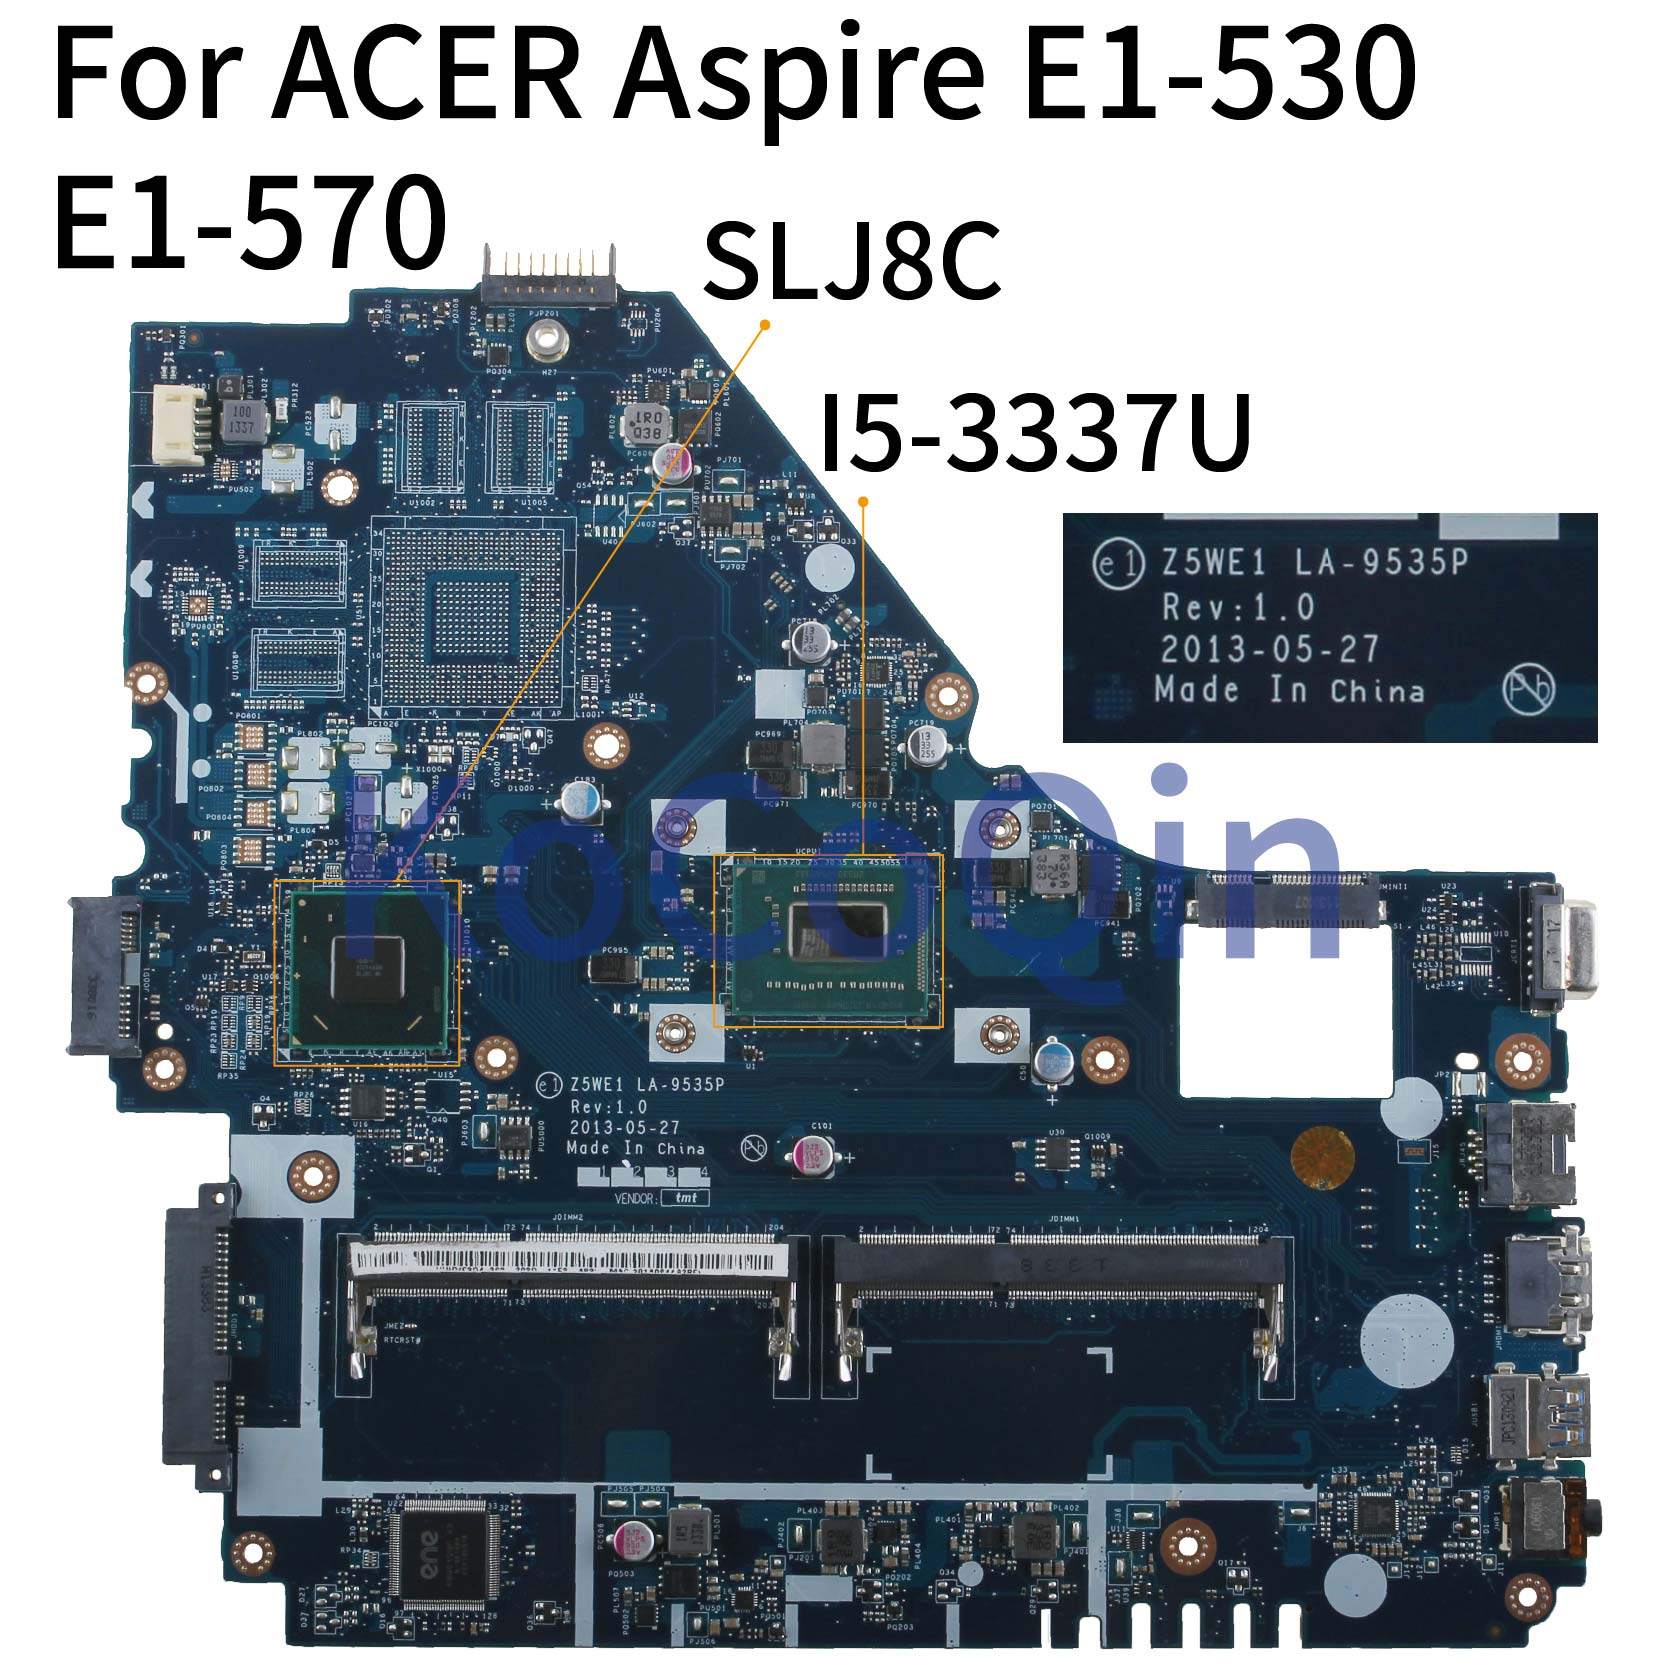 KoCoQin Laptop <font><b>motherboard</b></font> For <font><b>ACER</b></font> Aspir <font><b>E1</b></font>-570G <font><b>E1</b></font>-570 I5-3337U Mainboard <font><b>Z5WE1</b></font> LA-9535P SLJ8C image